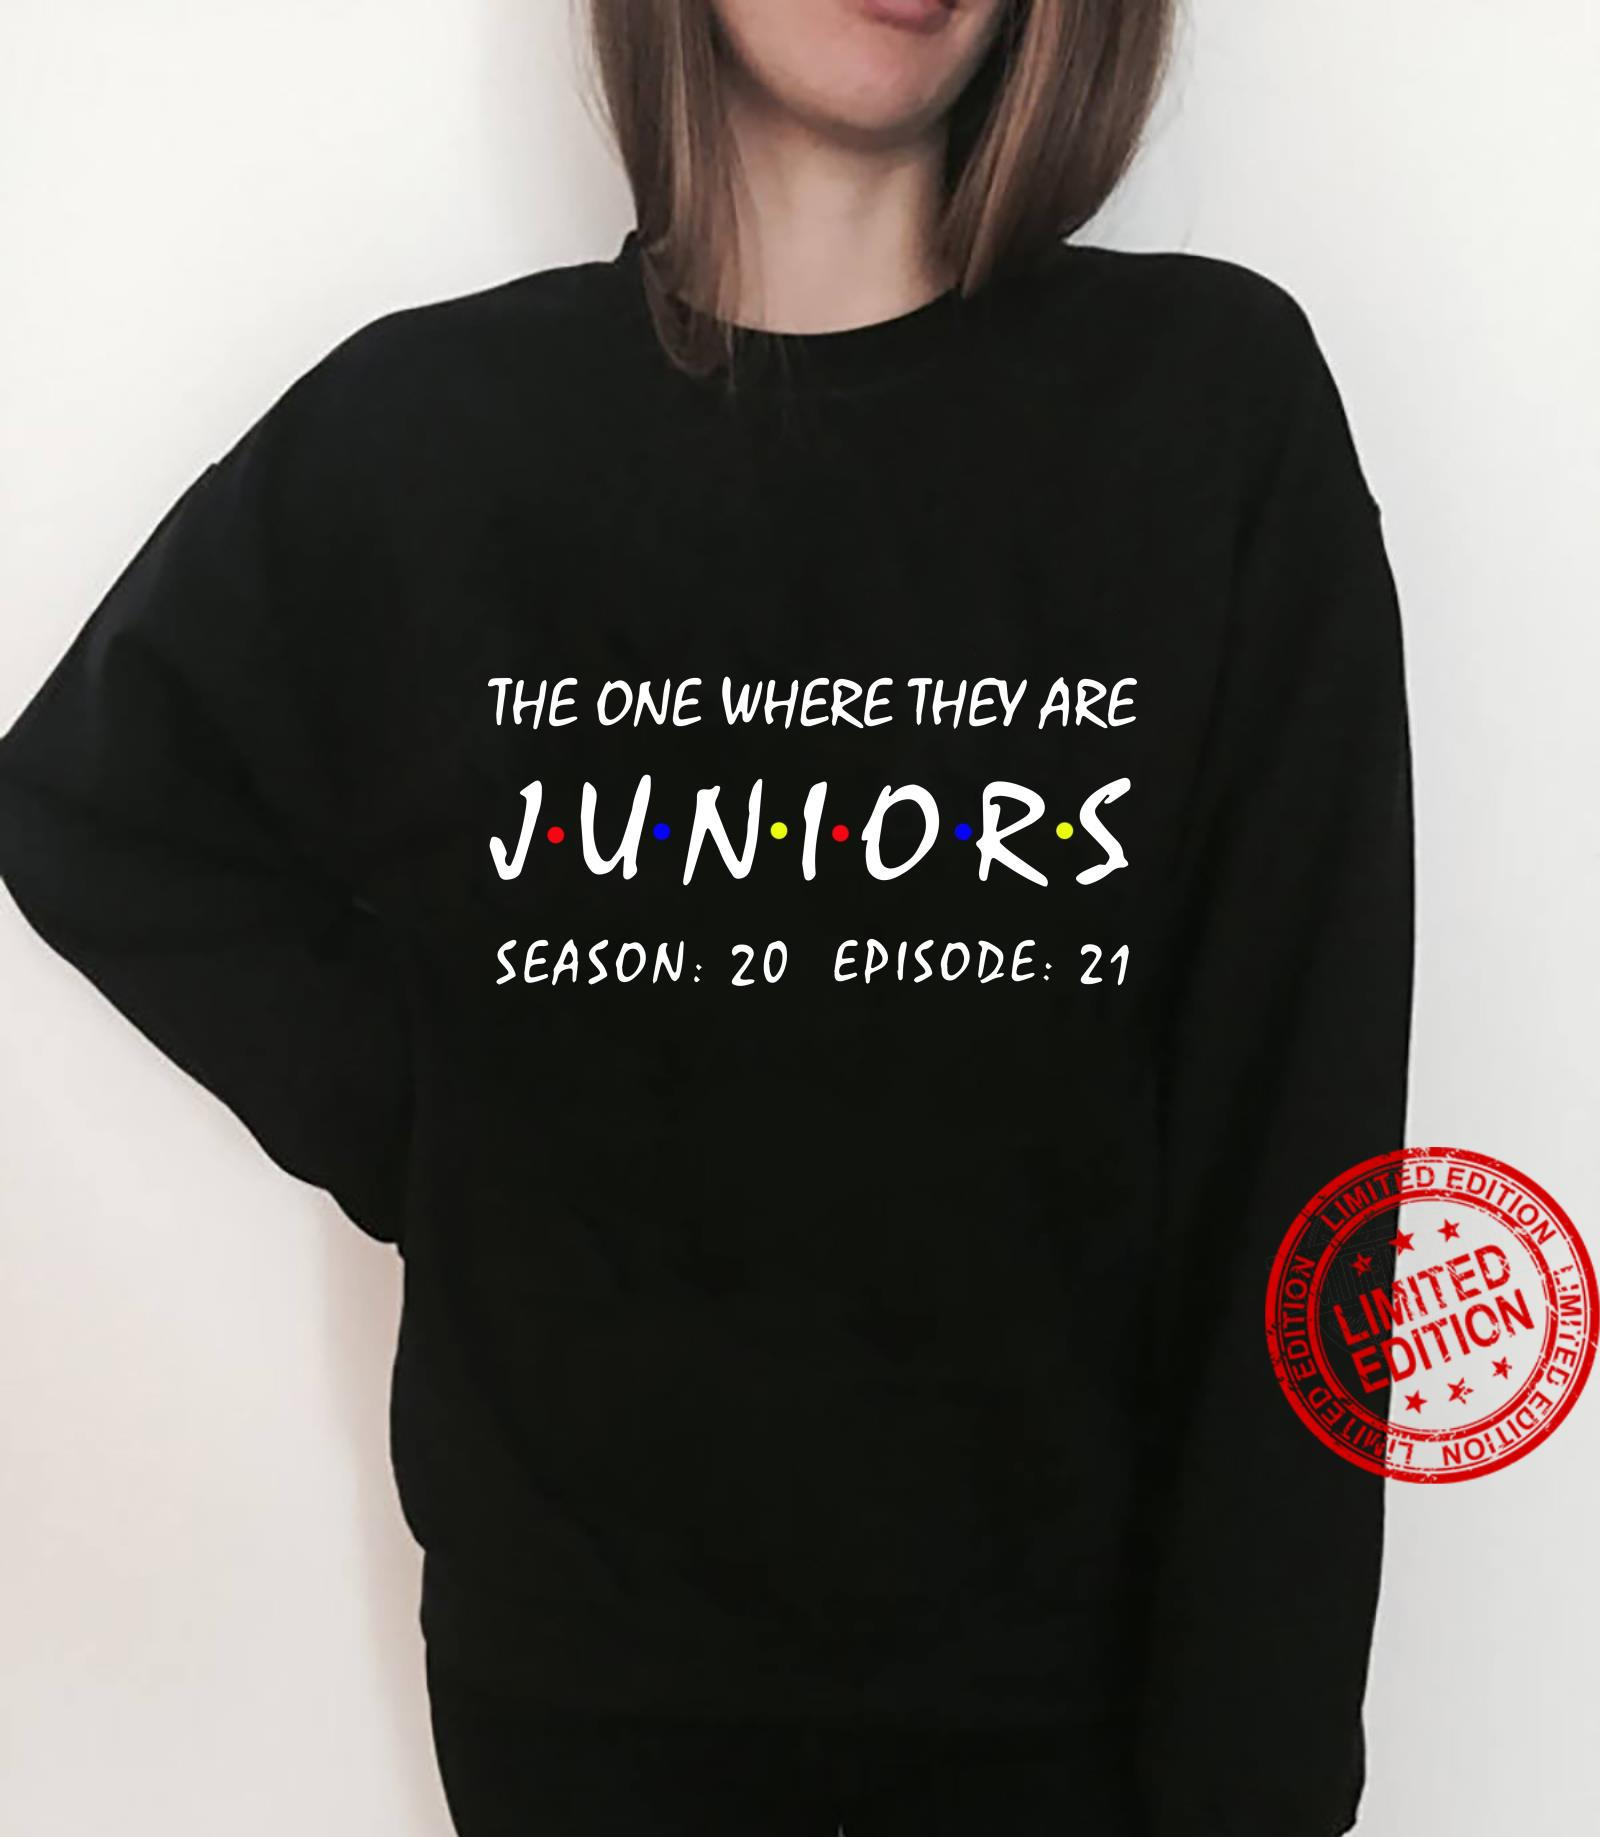 The one where they are Juniors season 20 episode 21 shirt sweater